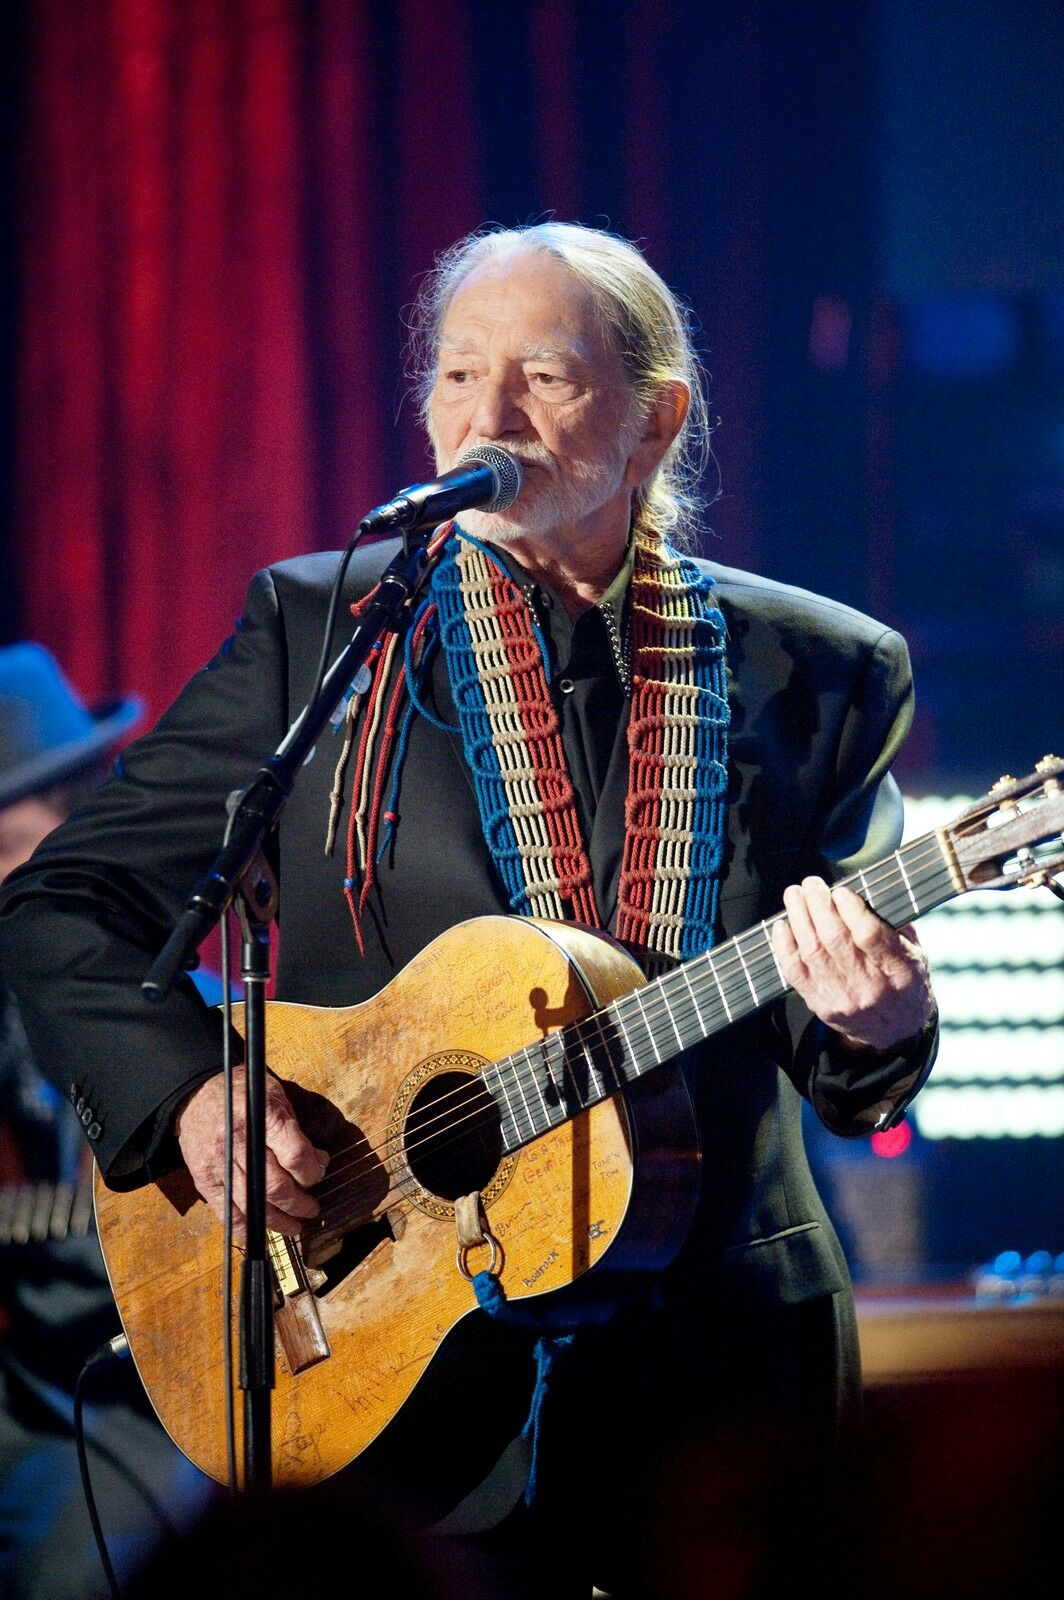 Willie Nelson Cancels Tour Dates Because of Health Issue